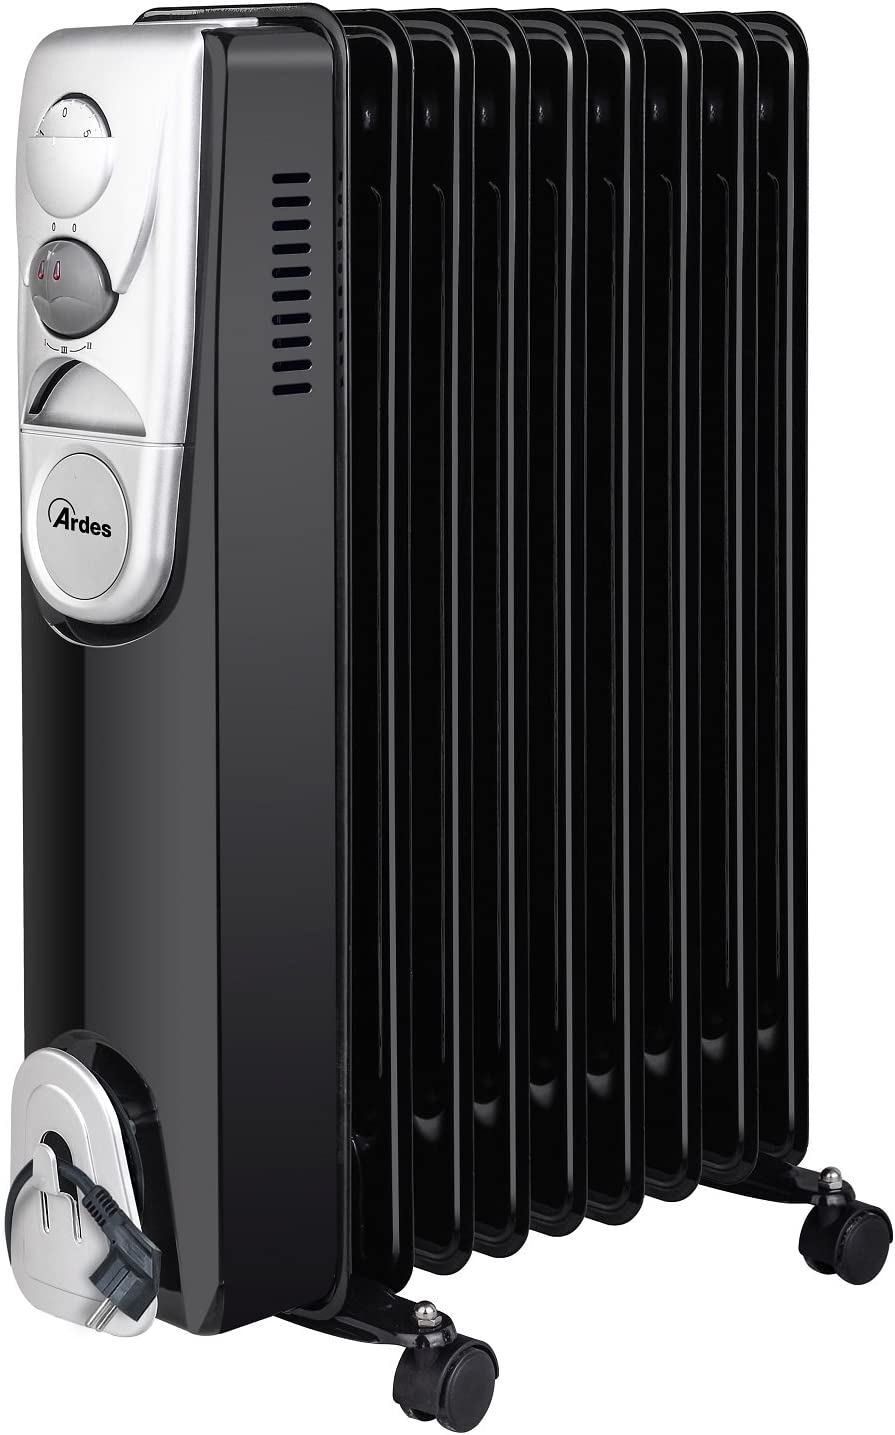 Ardes 4R09B - Calefactor (Oil electric space heater, Aceite, Interior, Piso, Negro, 2000 W)